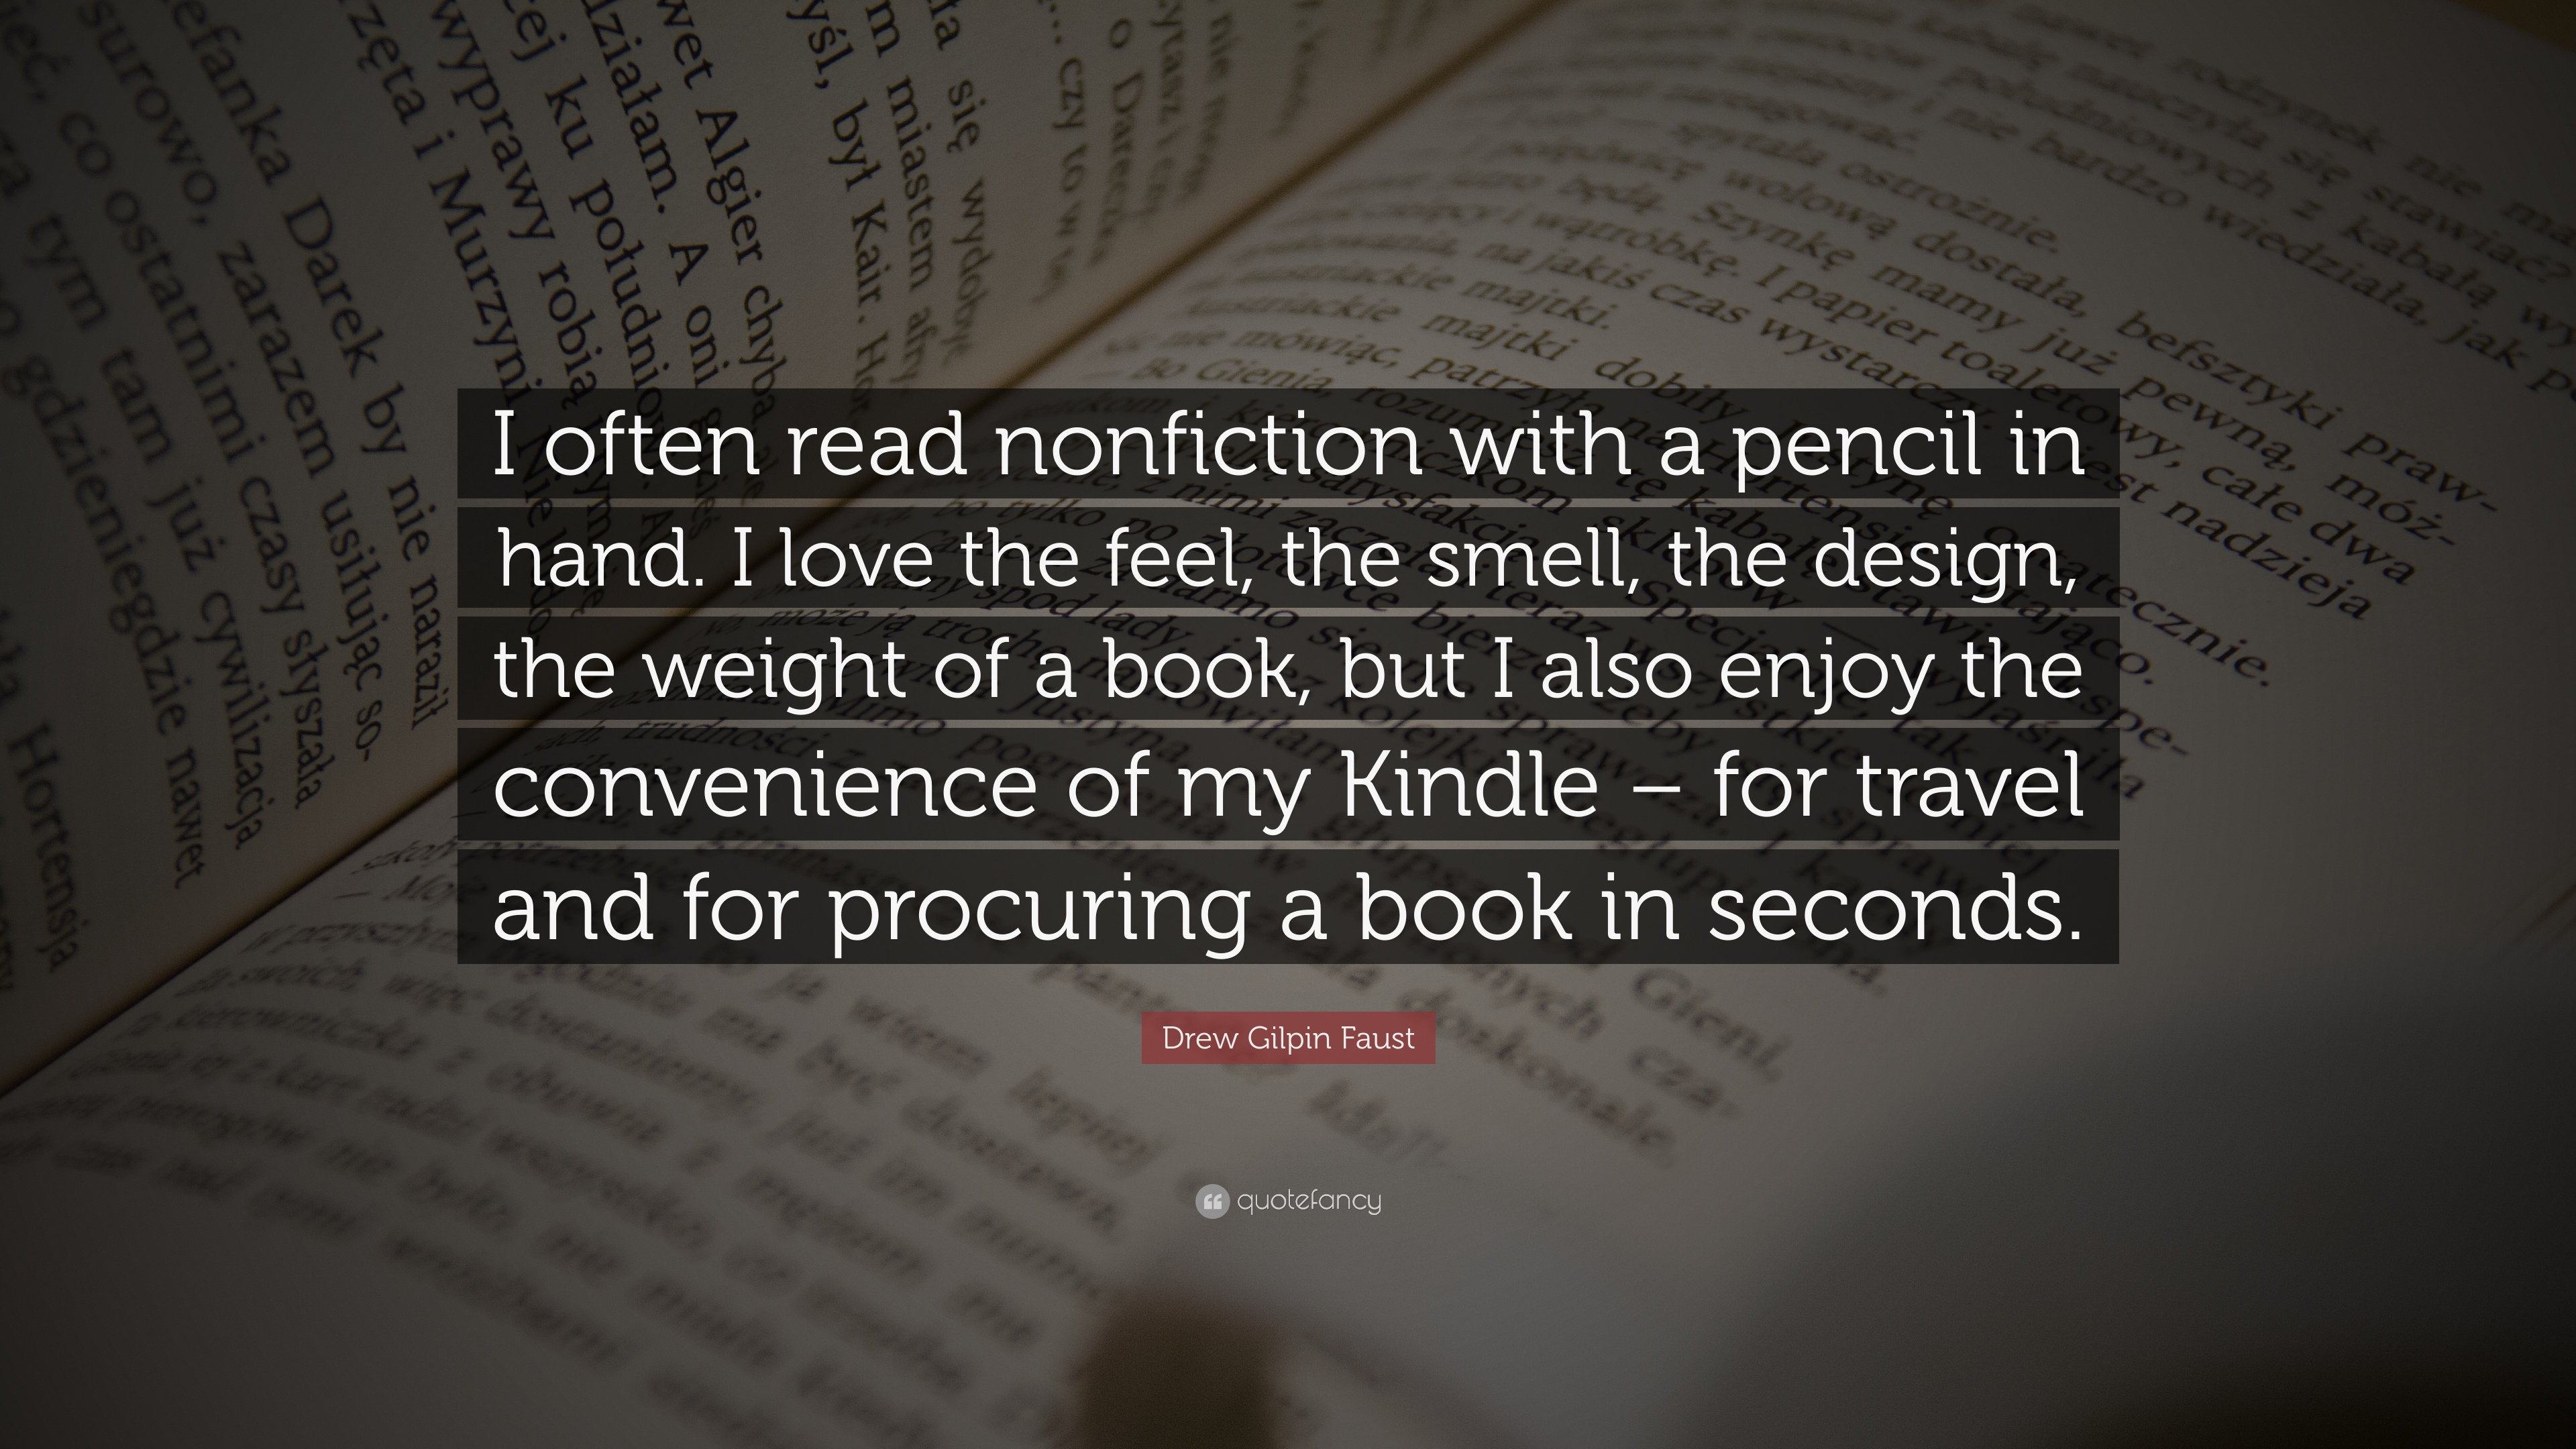 Superior Drew Gilpin Faust Quote: U201cI Often Read Nonfiction With A Pencil In Hand.